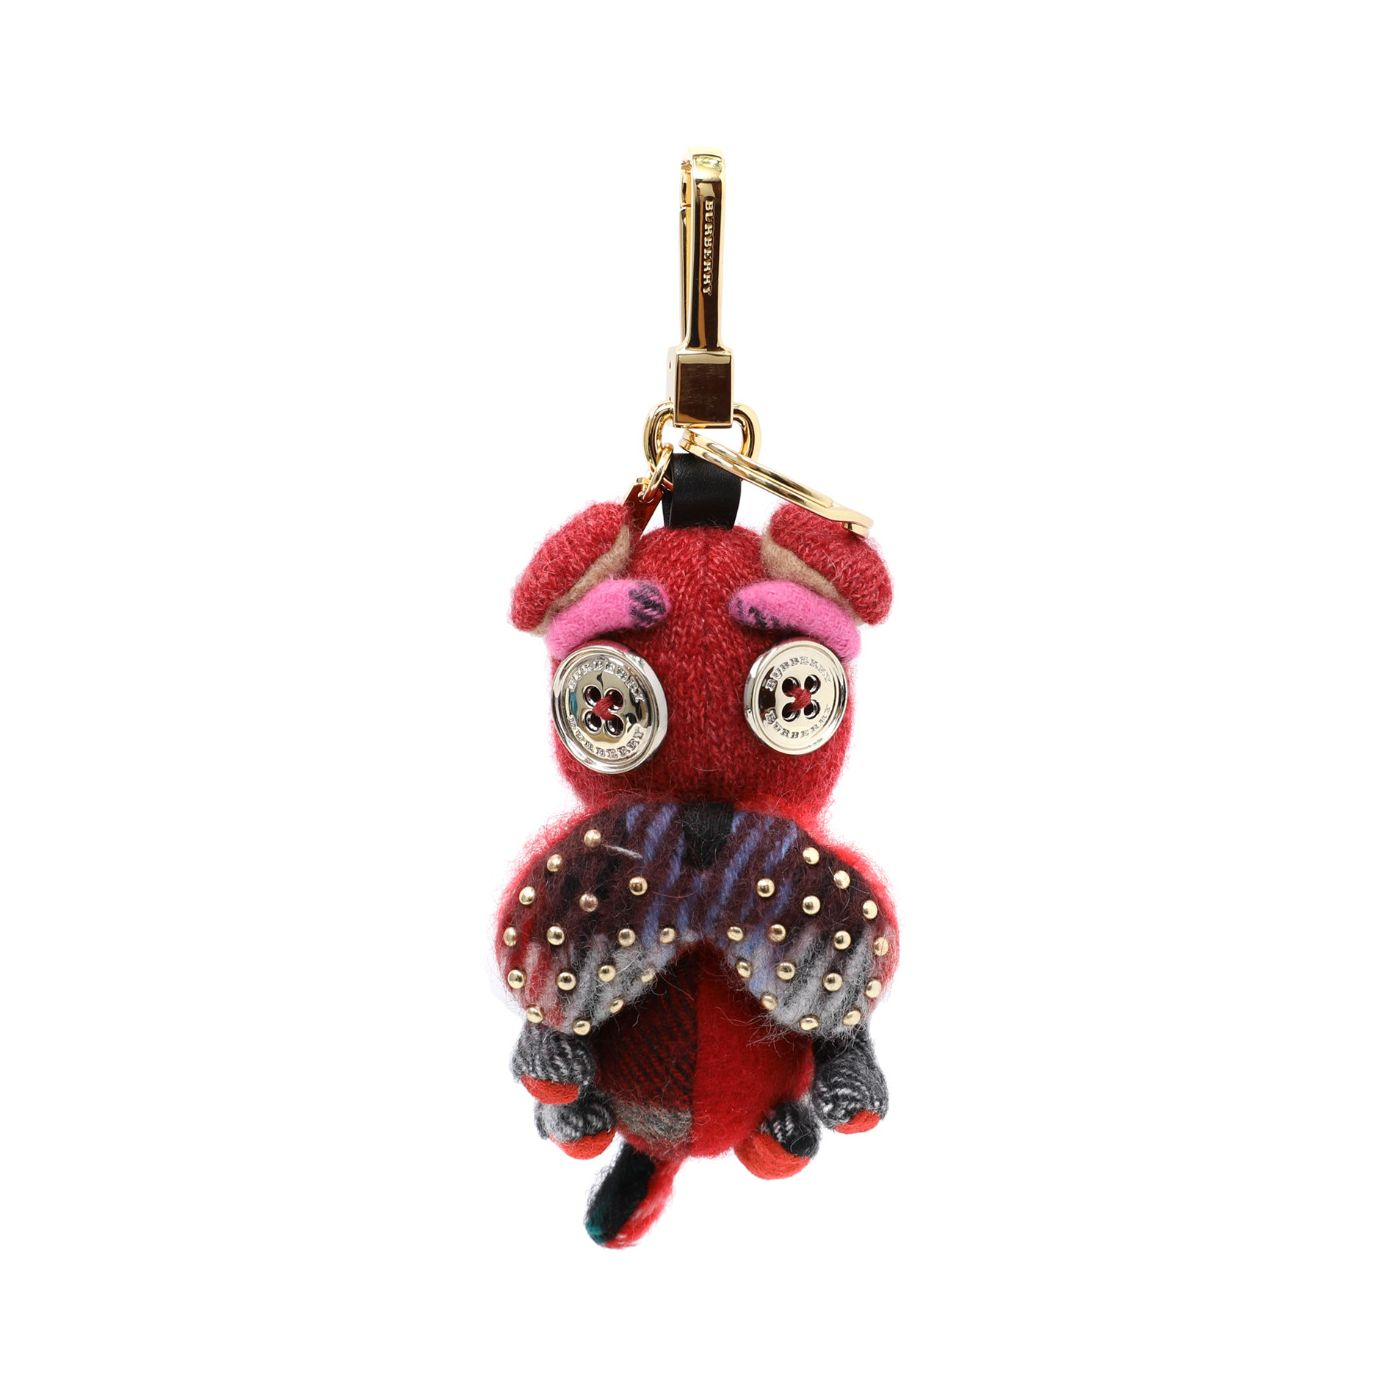 Burberry Red Seymour The Bulldog Bag Charm